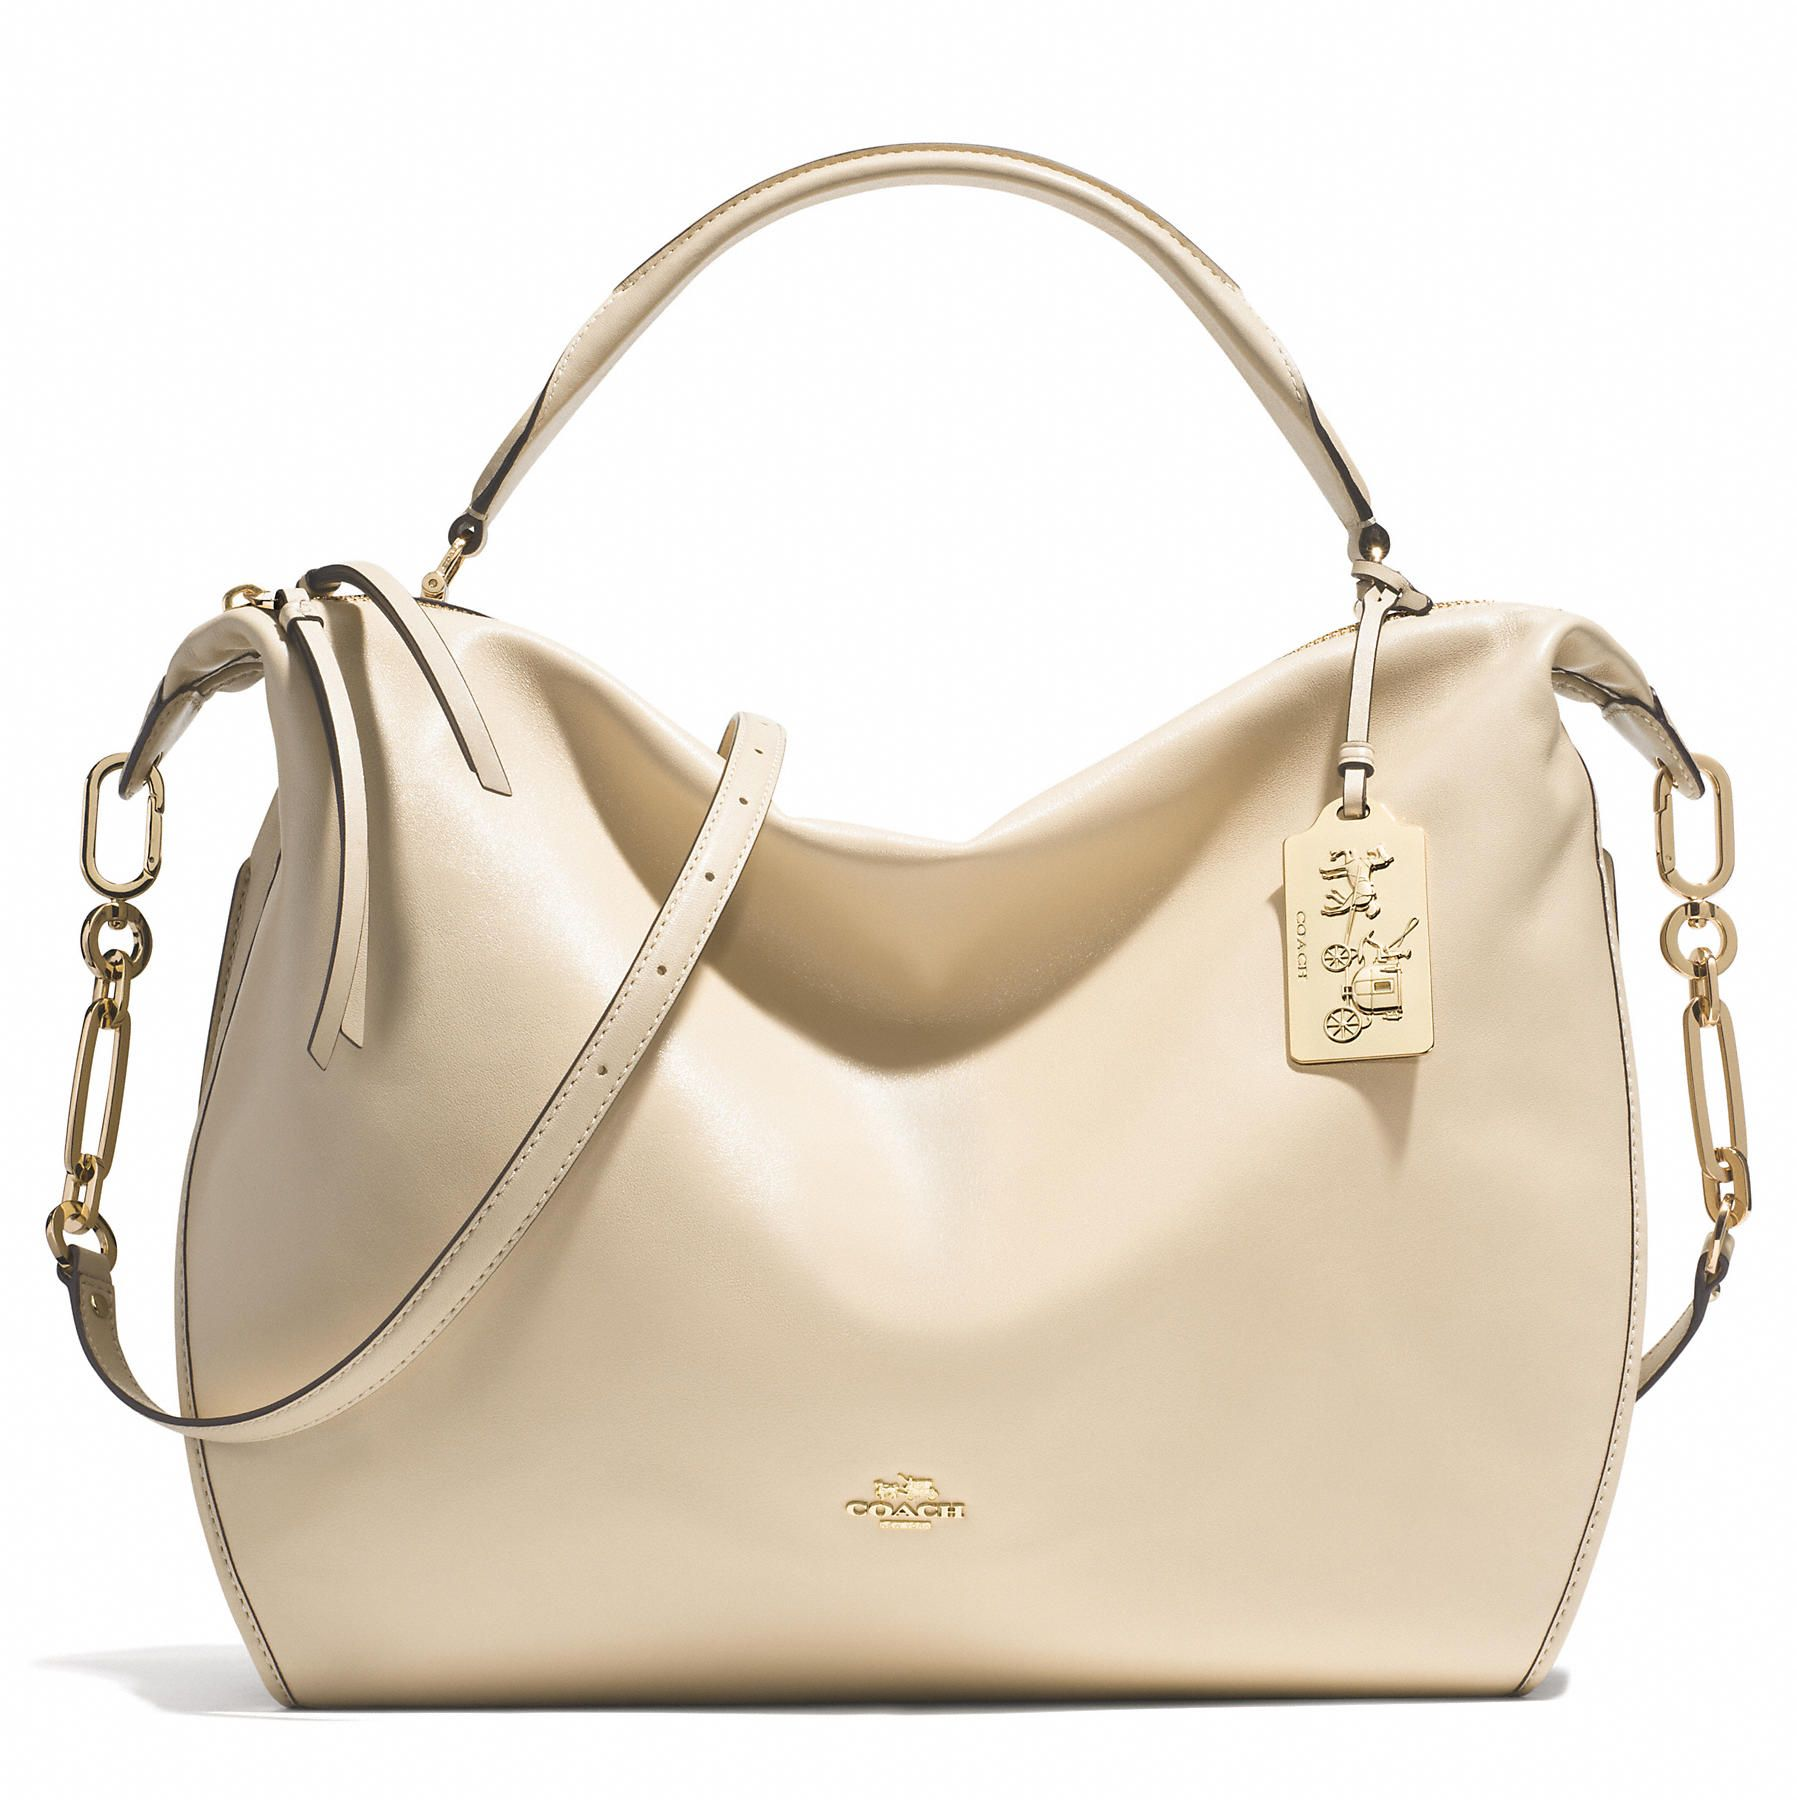 Coach :: MADISON XL SMYTHE SATCHEL IN LEATHER